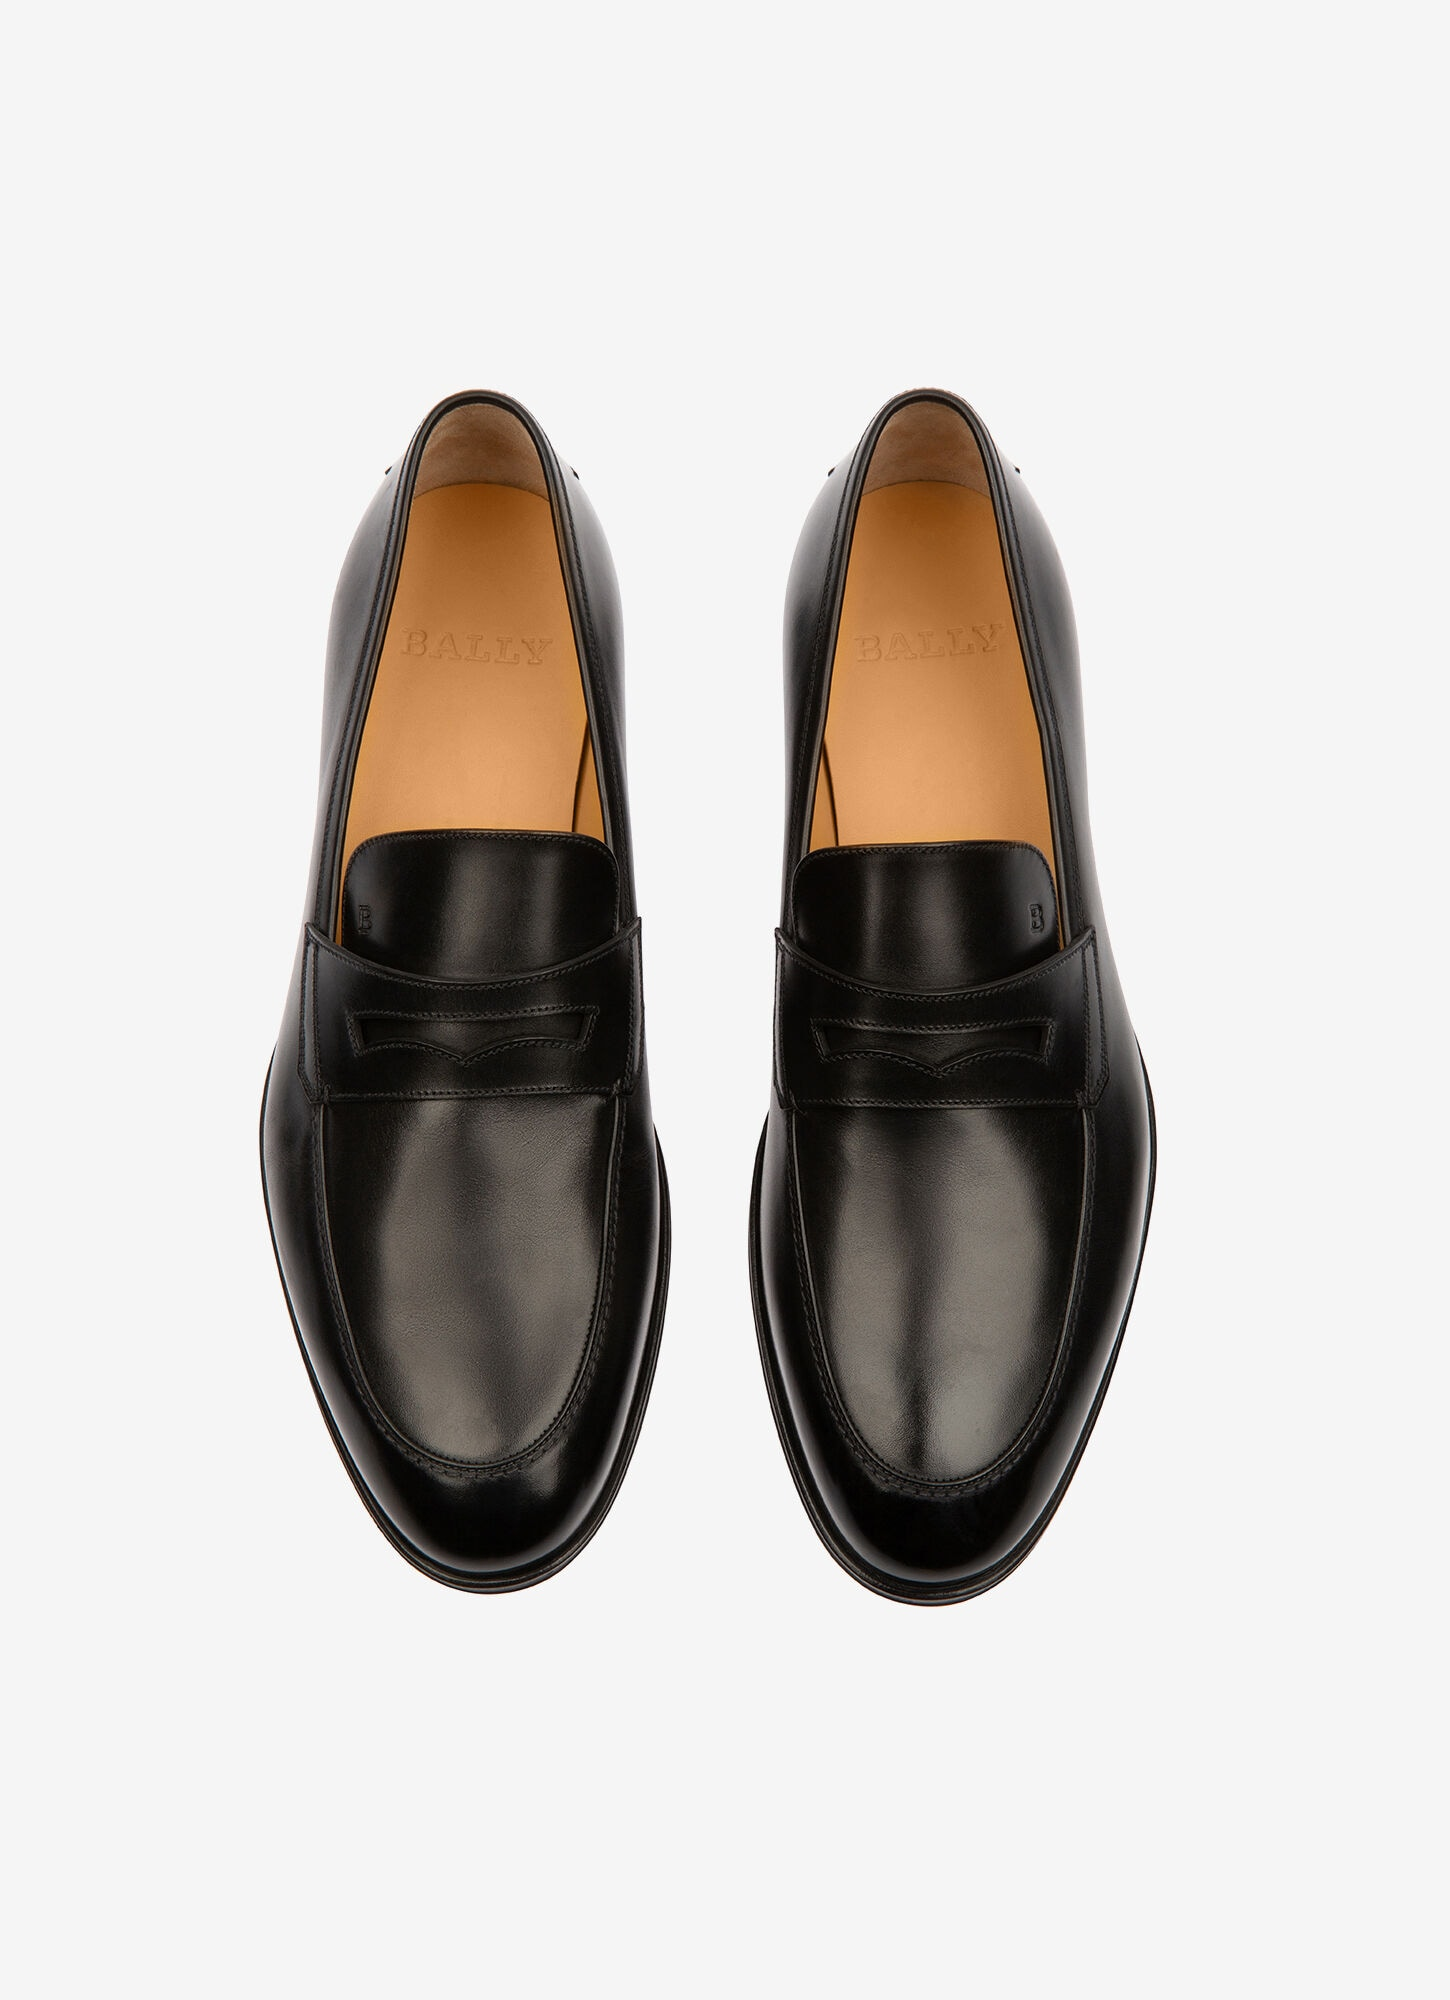 WEBB  Mens Loafers   Black Leather   Bally